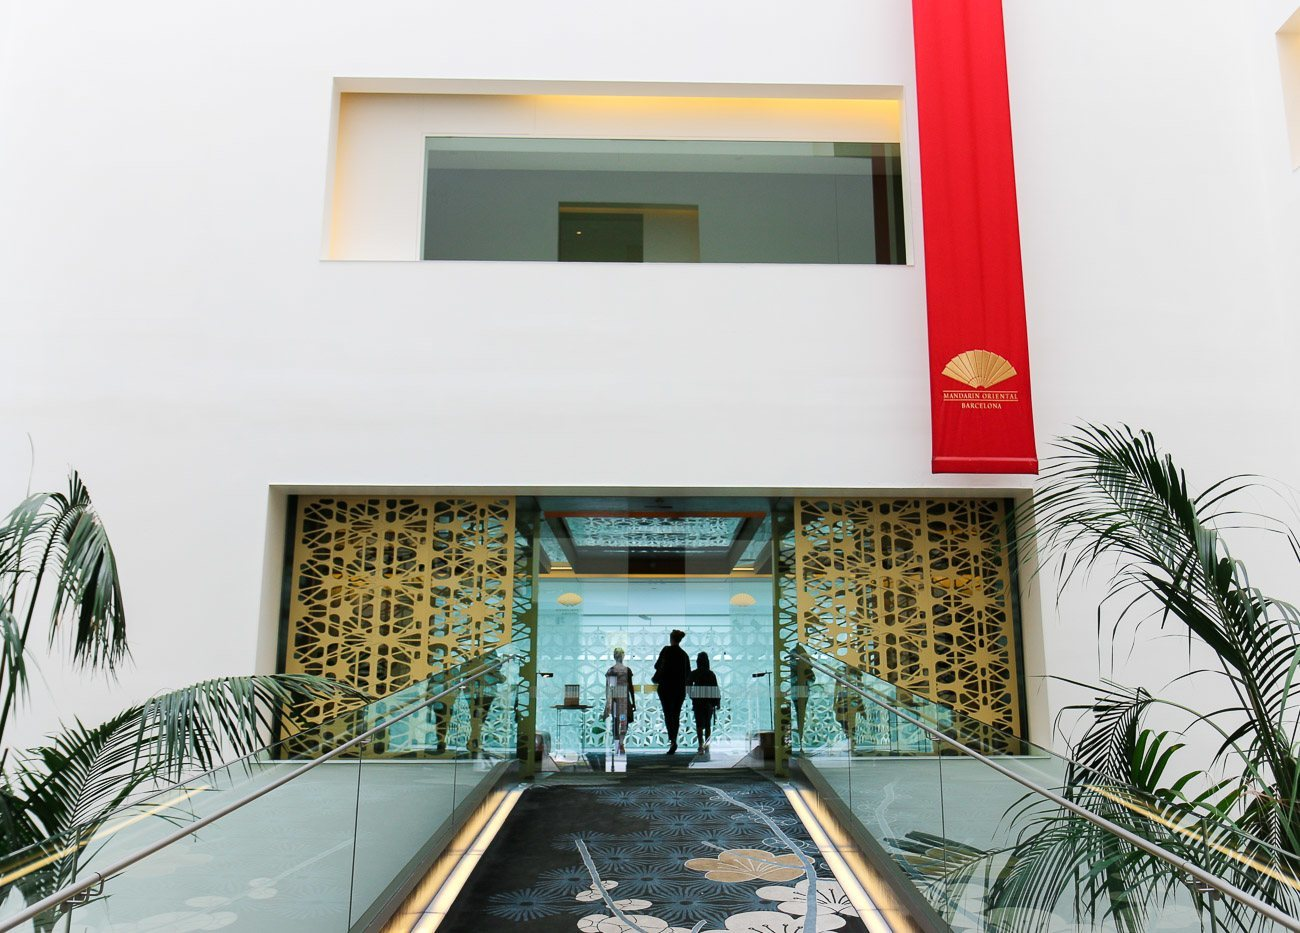 The catwalk entrance to Mandarin Oriental, Barcelona